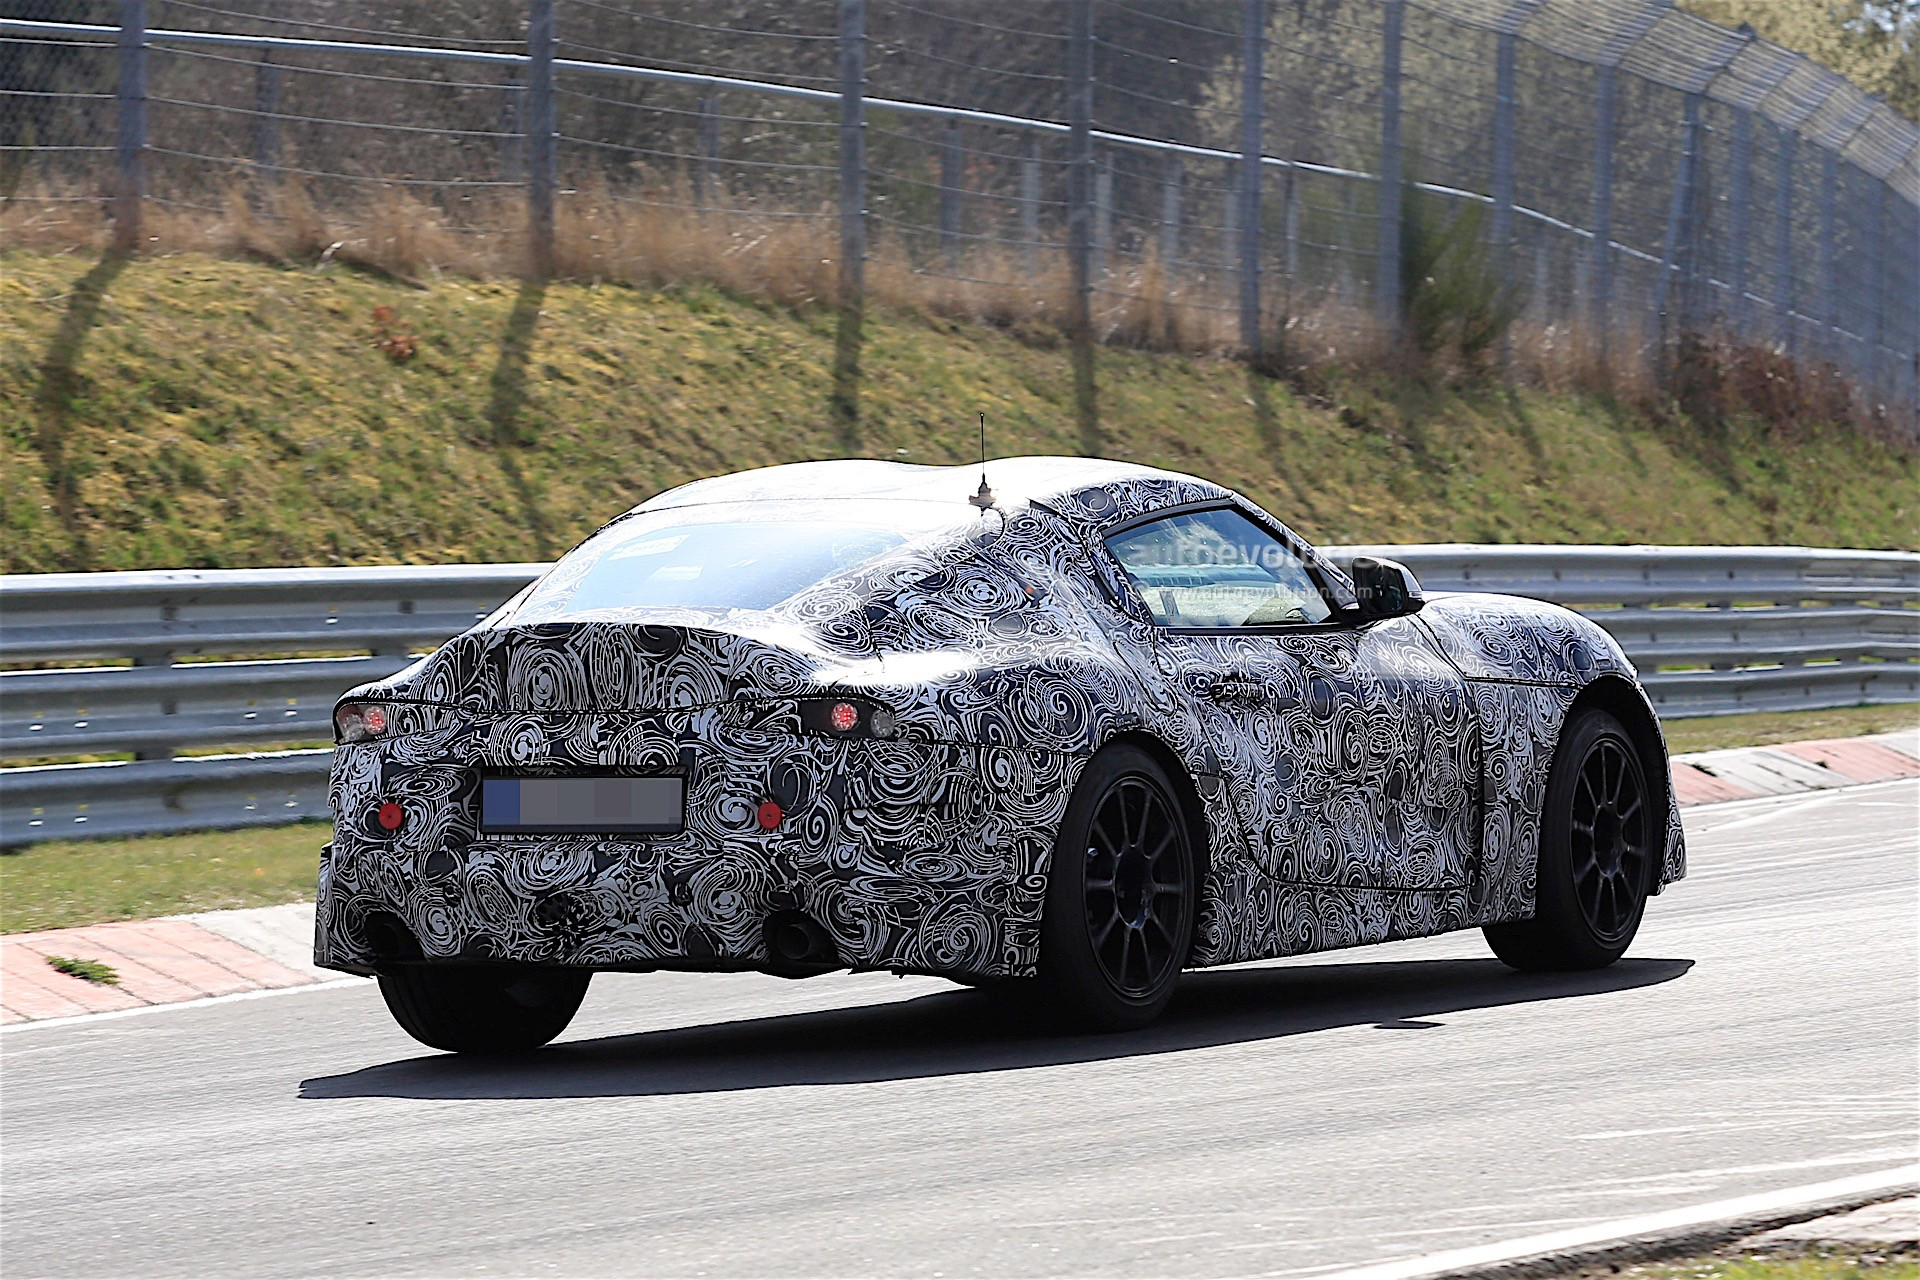 2018 Toyota Supra (J29) Getting ZF 8HP Automatic, B48 And B58 BMW Turbo Engines